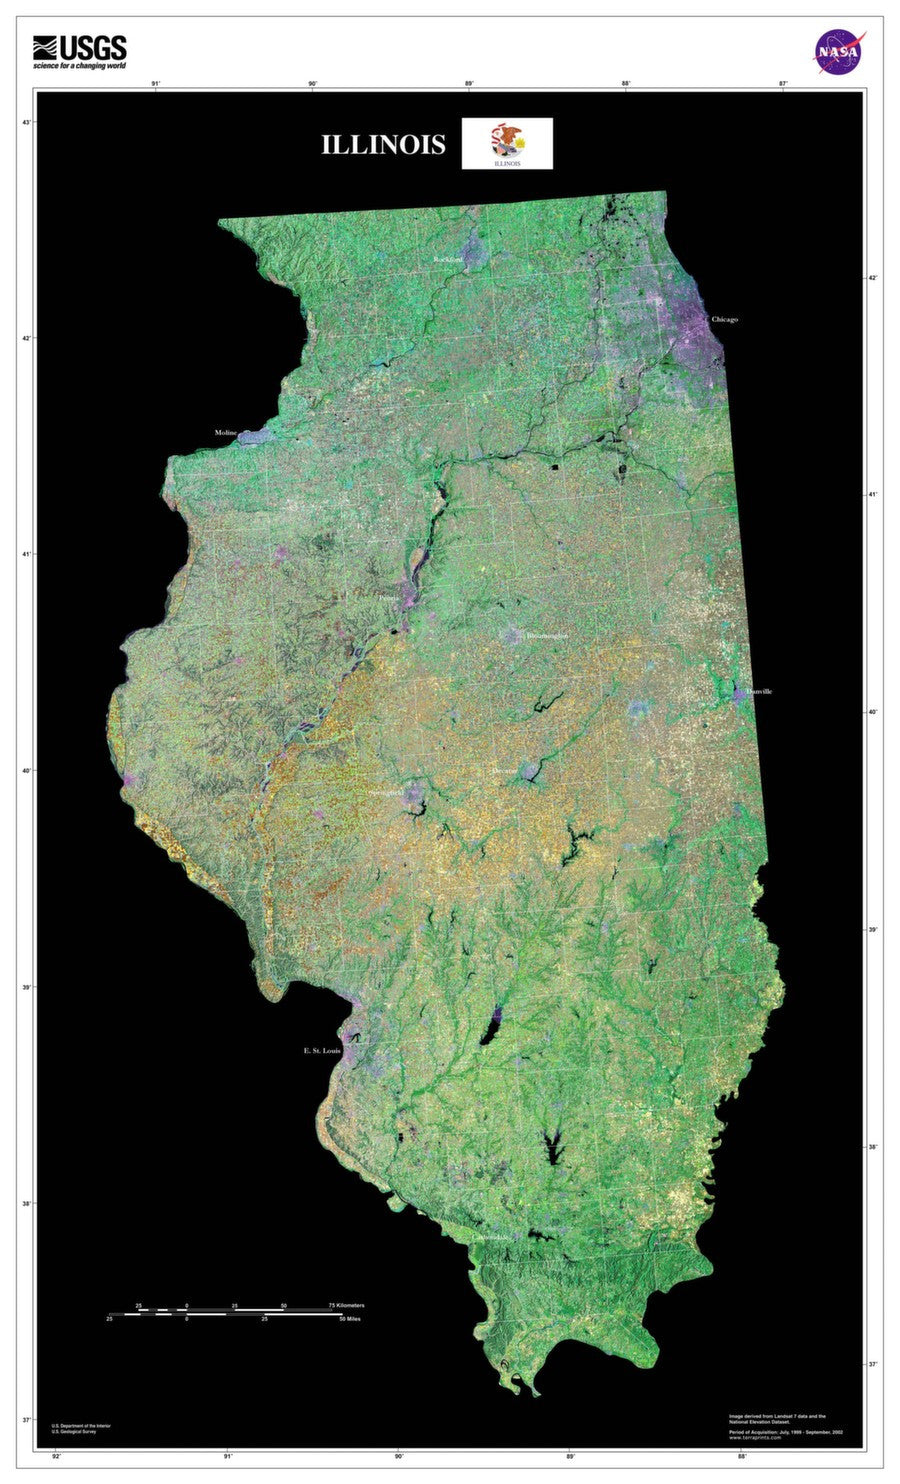 Illinois Satellite Imagery State Map Poster - TerraPrints.com